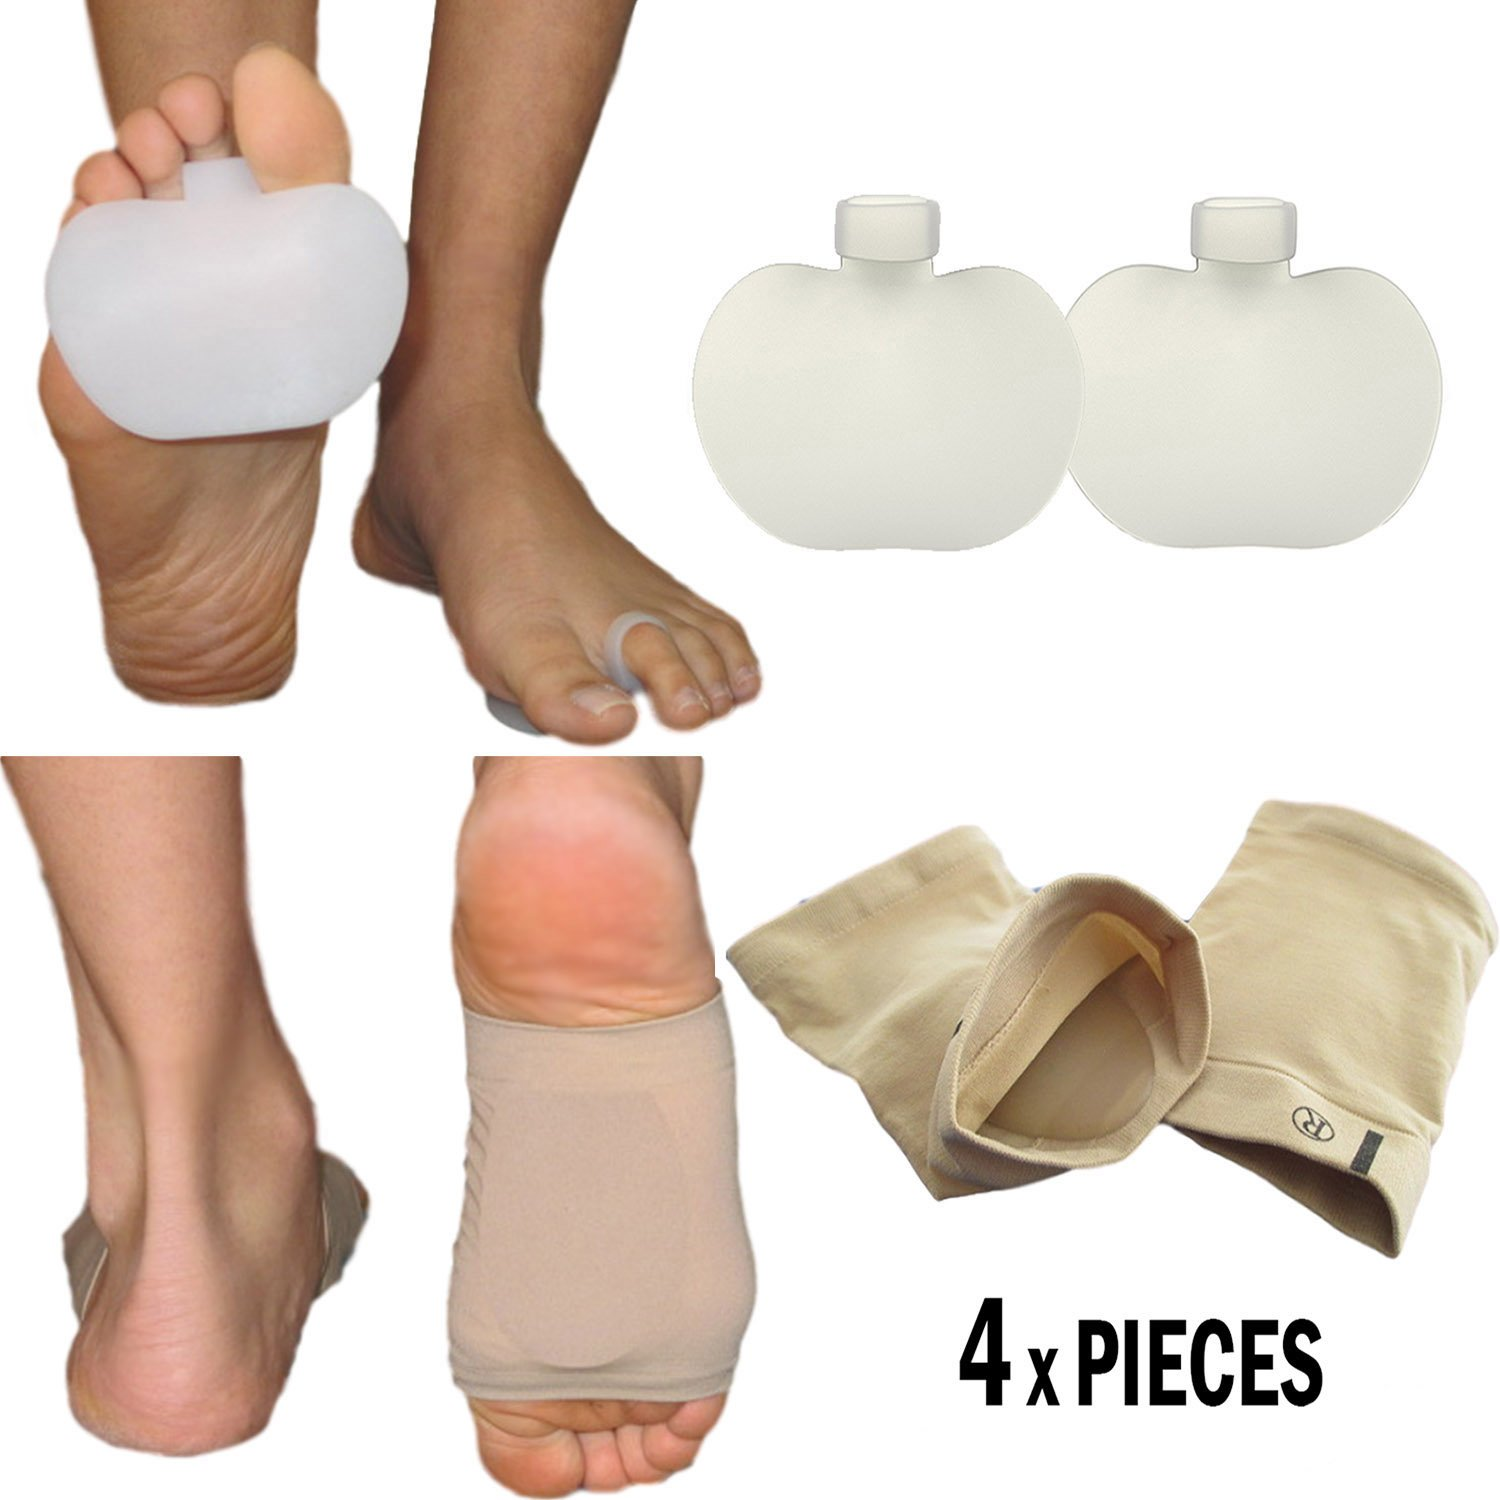 Metatarsal Foot Pads Bunion Sleeve - Forefoot Ball Insole for Mortons Neuroma, Metatarsalgia and Sesamoiditis (Fits Most)